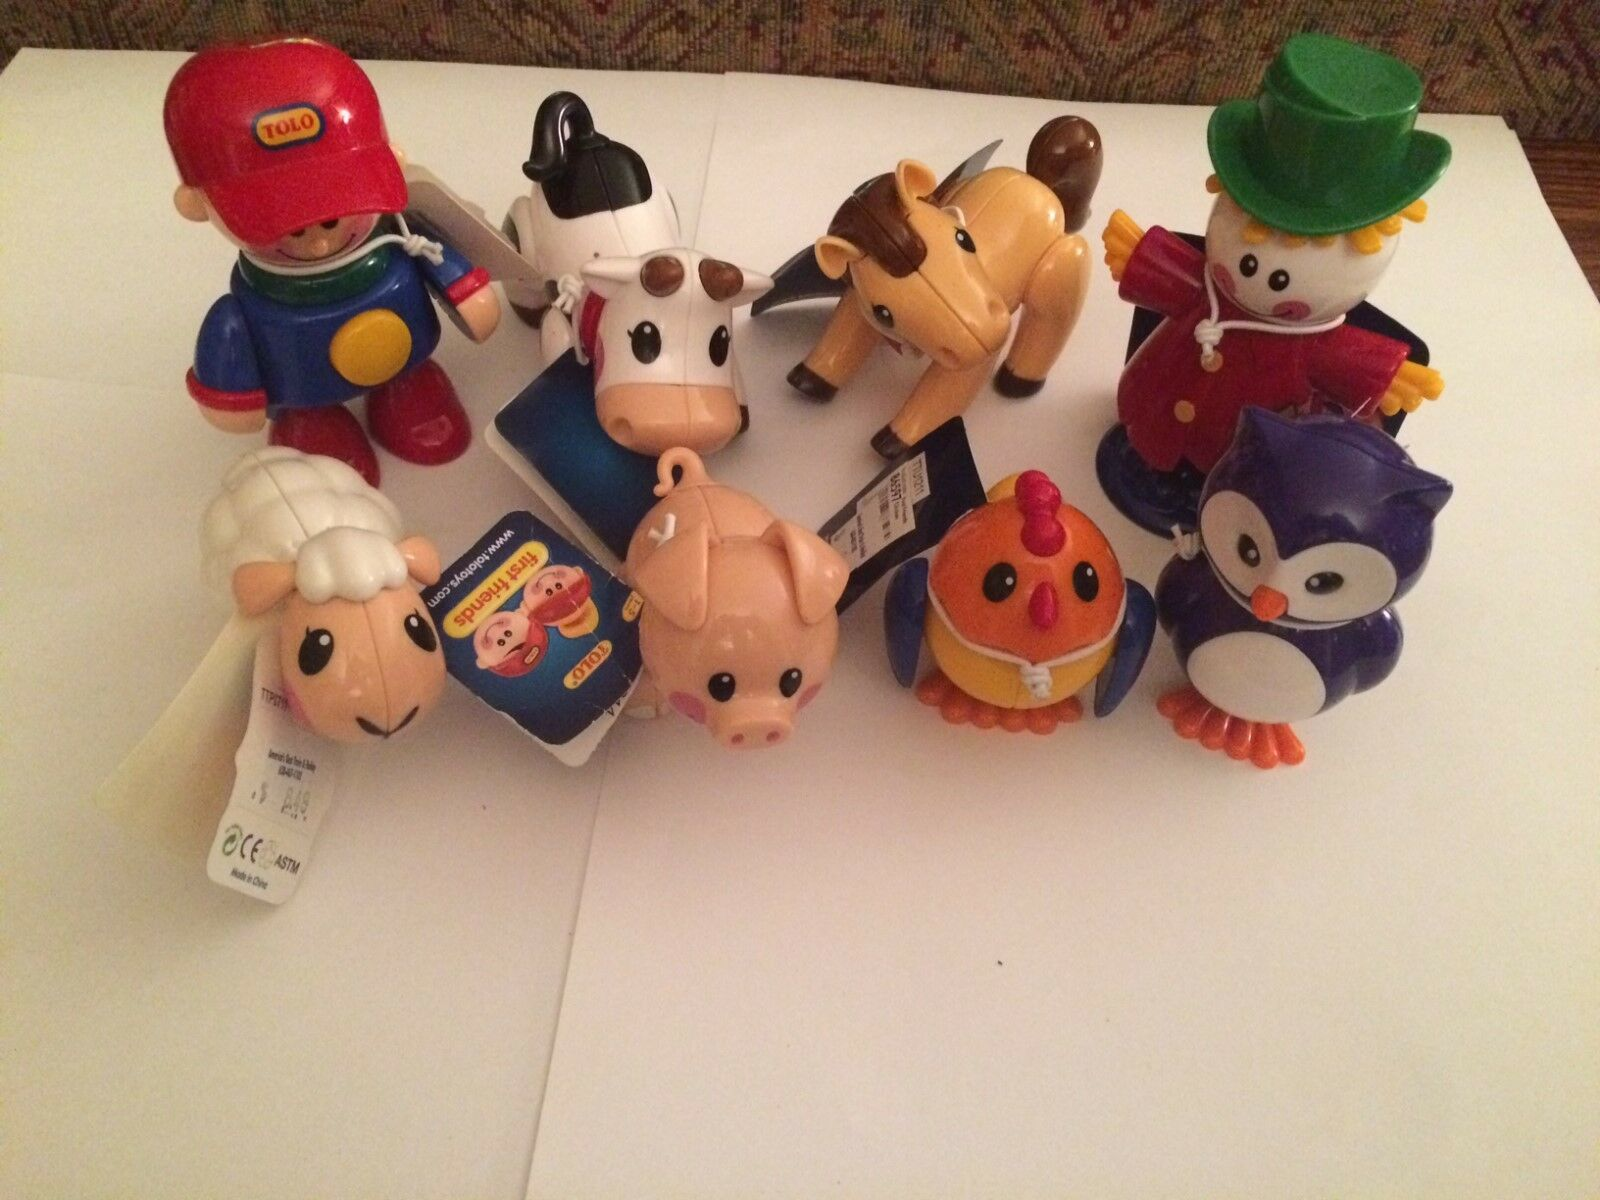 Tolo Toys Farm Animals Figure Assortment Lot New with Tags 8 Pieces